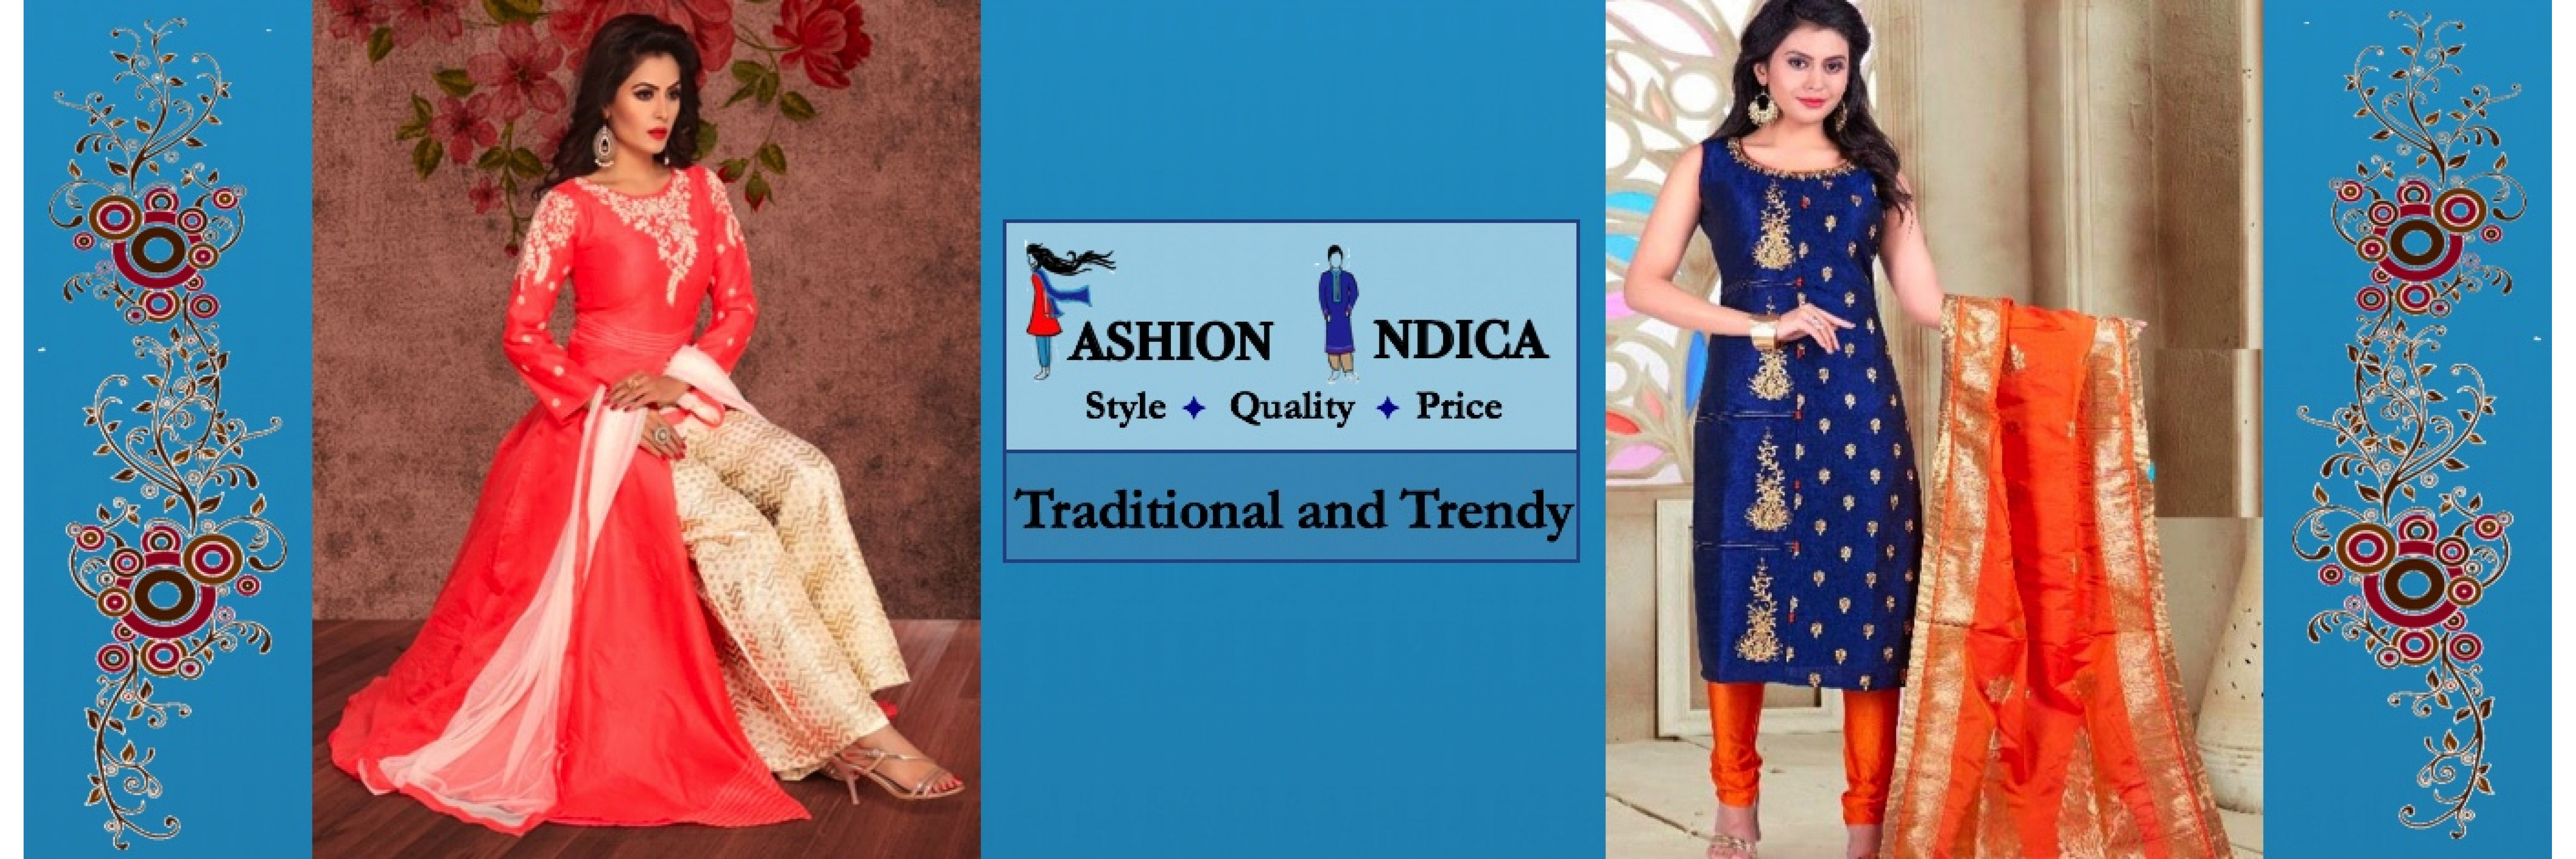 Traditional and Trendy